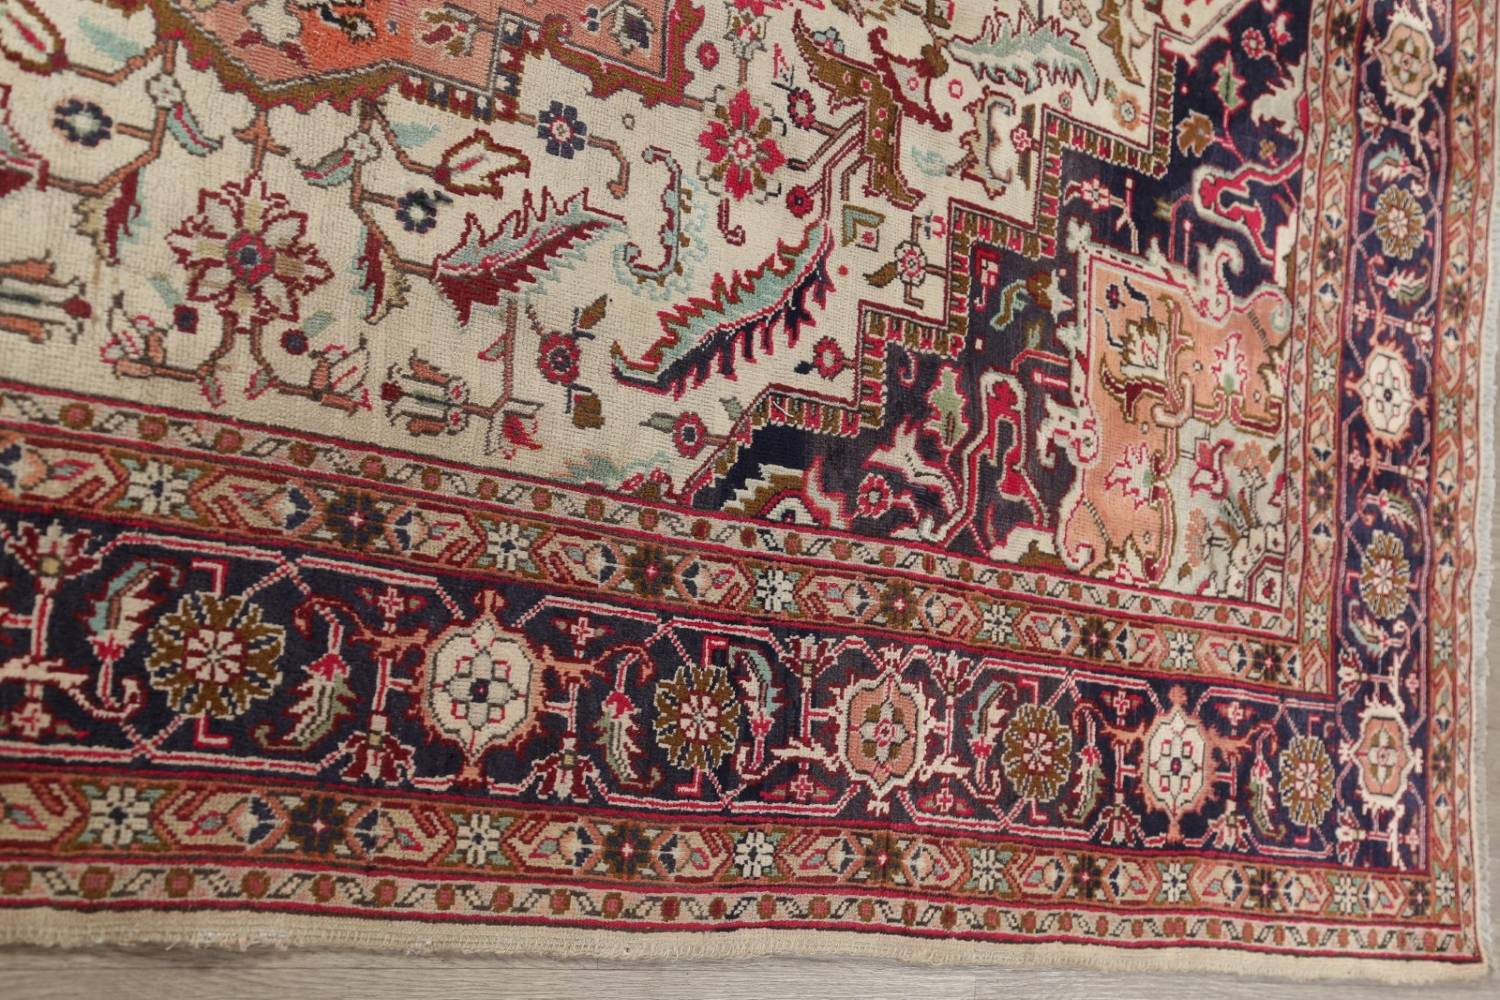 One-of-a-Kind Antique Heriz Serapi Persian Hand-Knotted 7x9 Wool Area Rug image 14